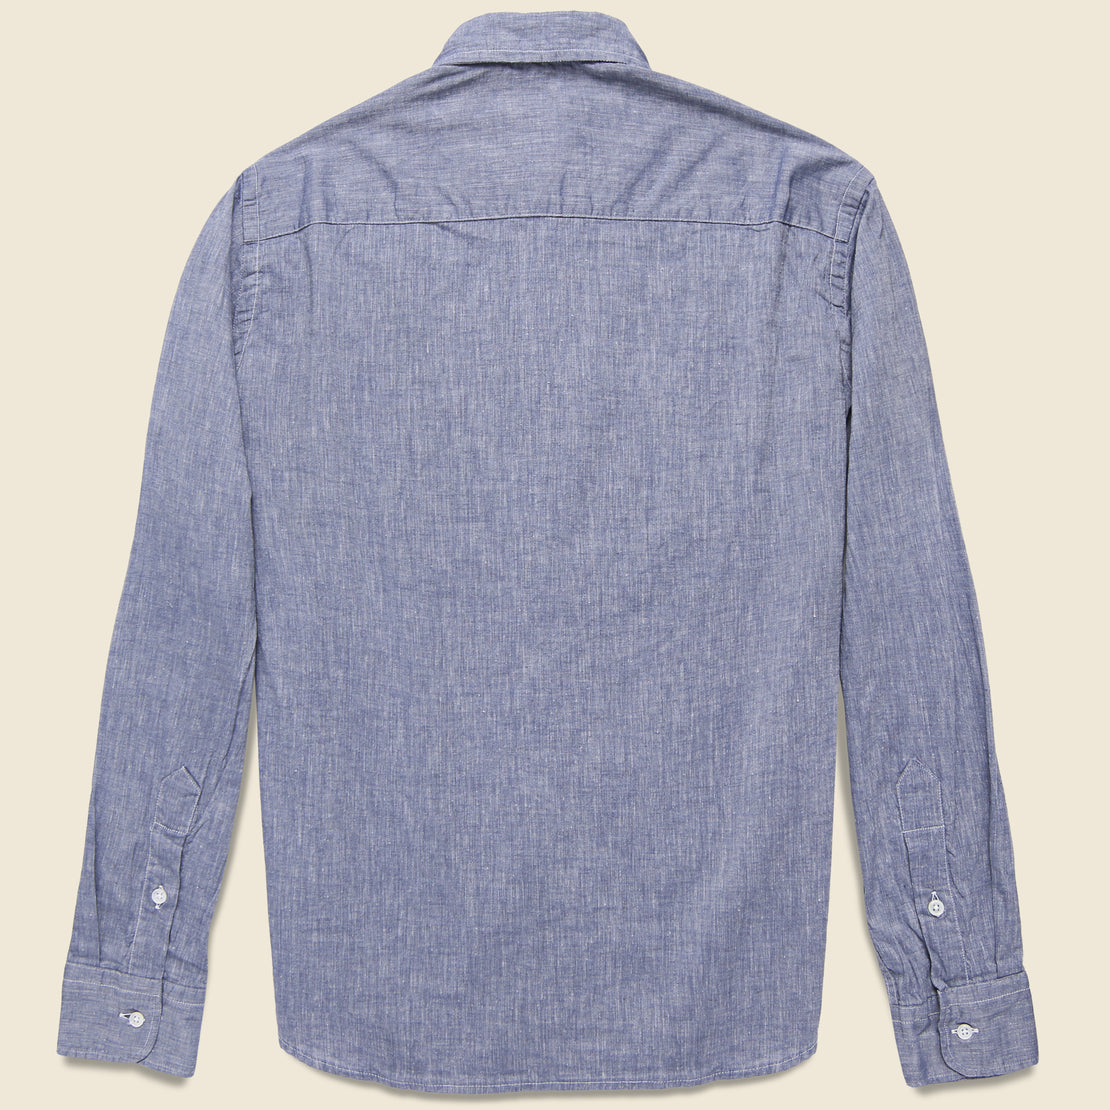 Brother Fit Shirt - Navy Chambray